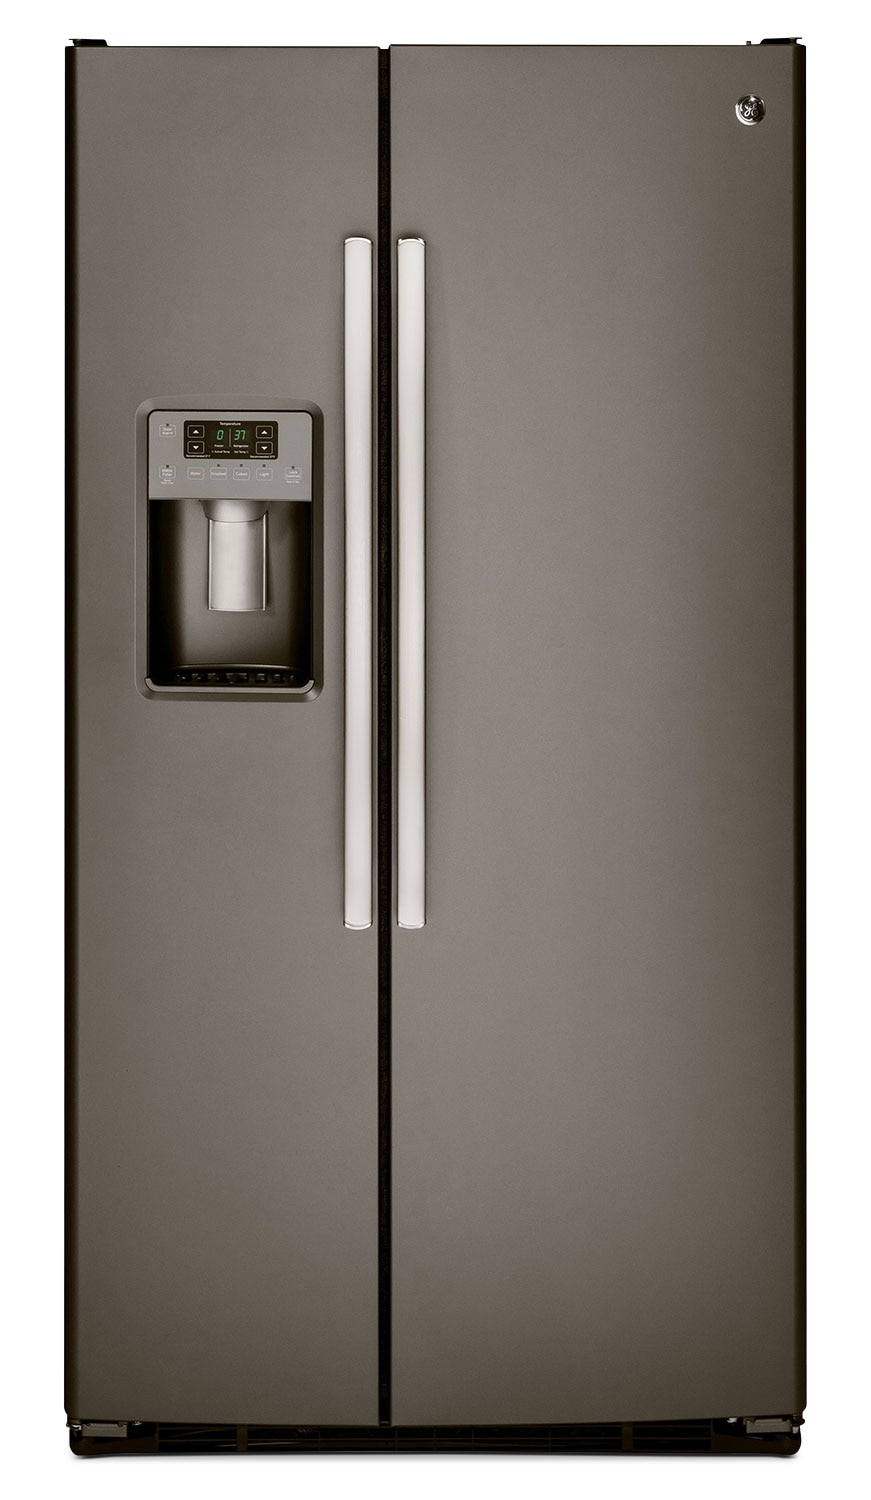 Refrigerators and Freezers - GE 25.4 Cu. Ft. Side-by-Side Refrigerator with Dispenser - Slate